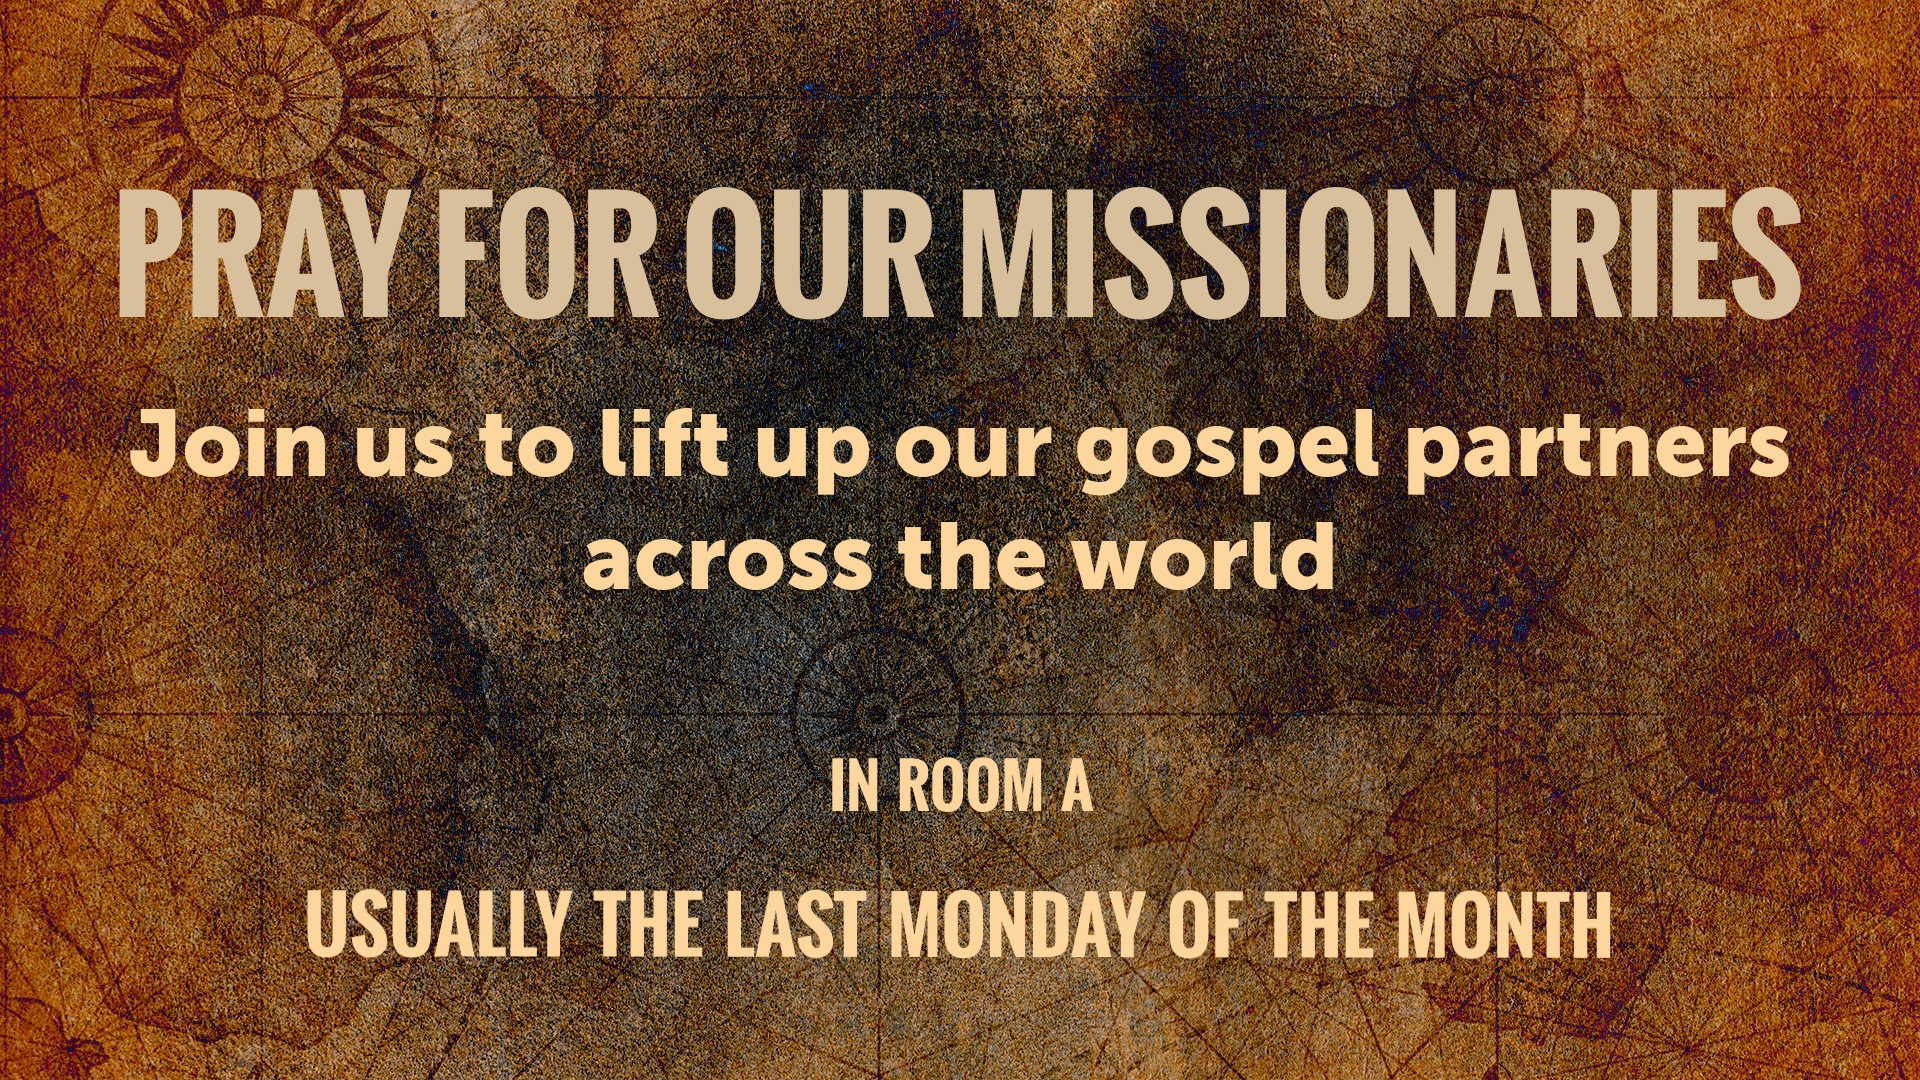 Website Pray for Our Missionaries image